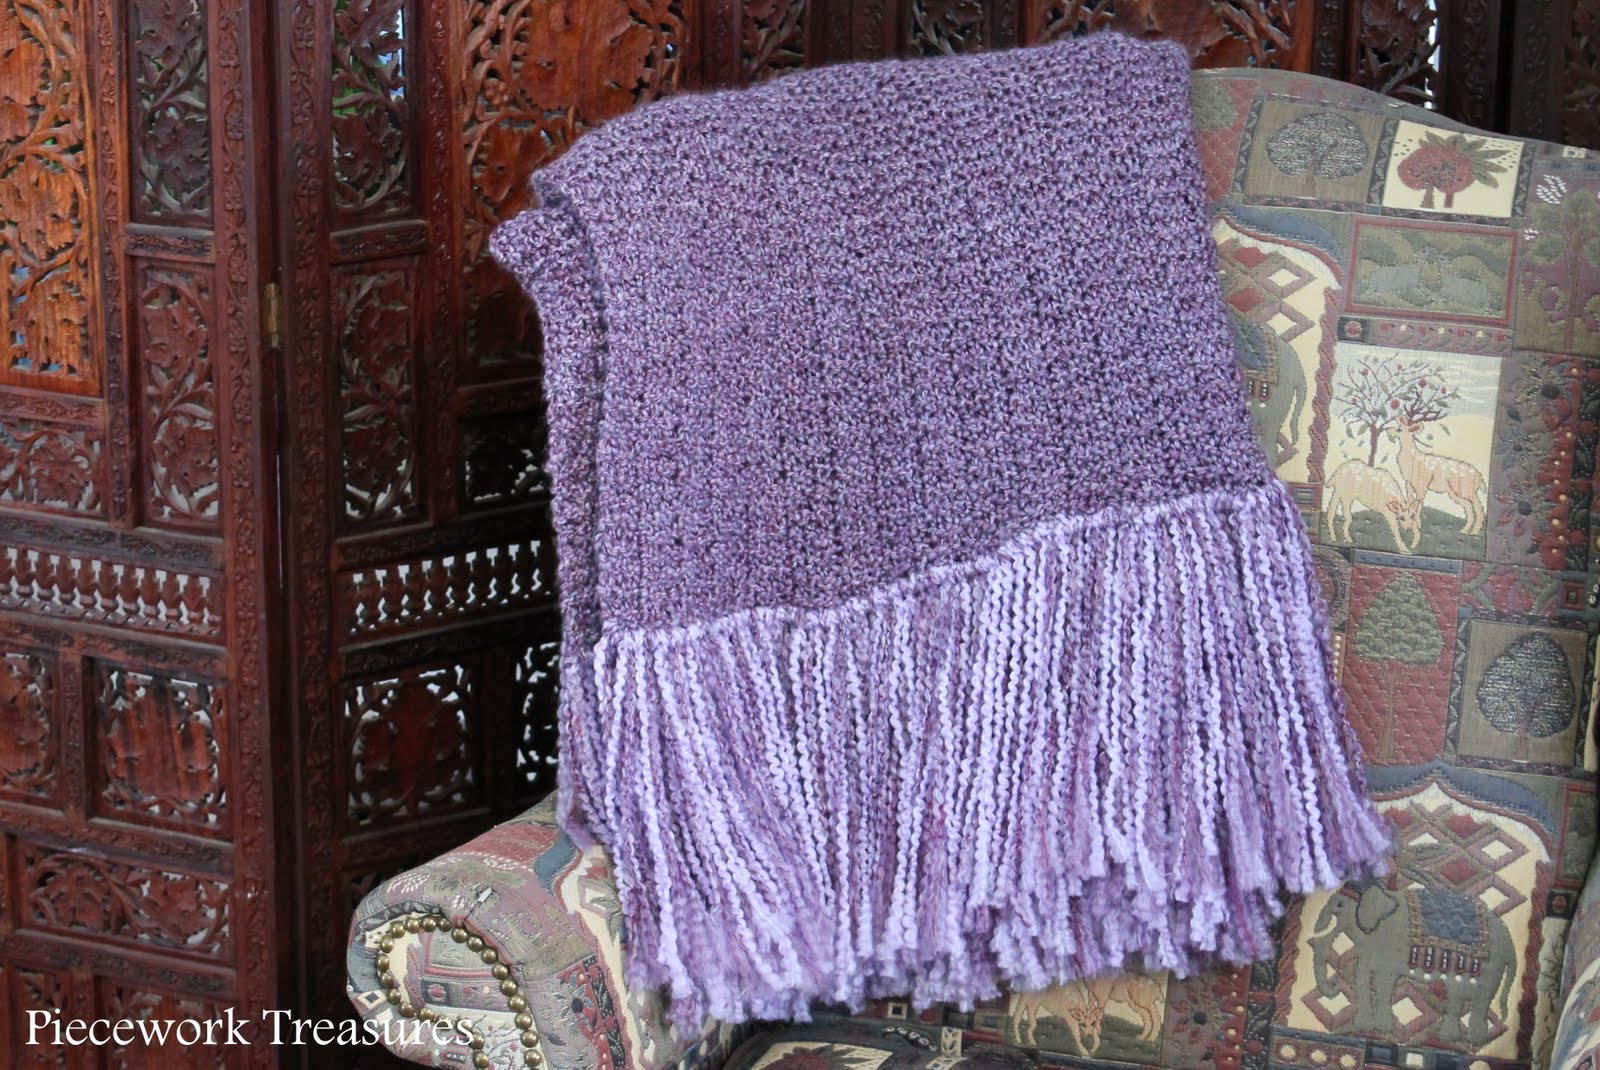 Lisa's Carolina | Handmade: Knitting has been ...